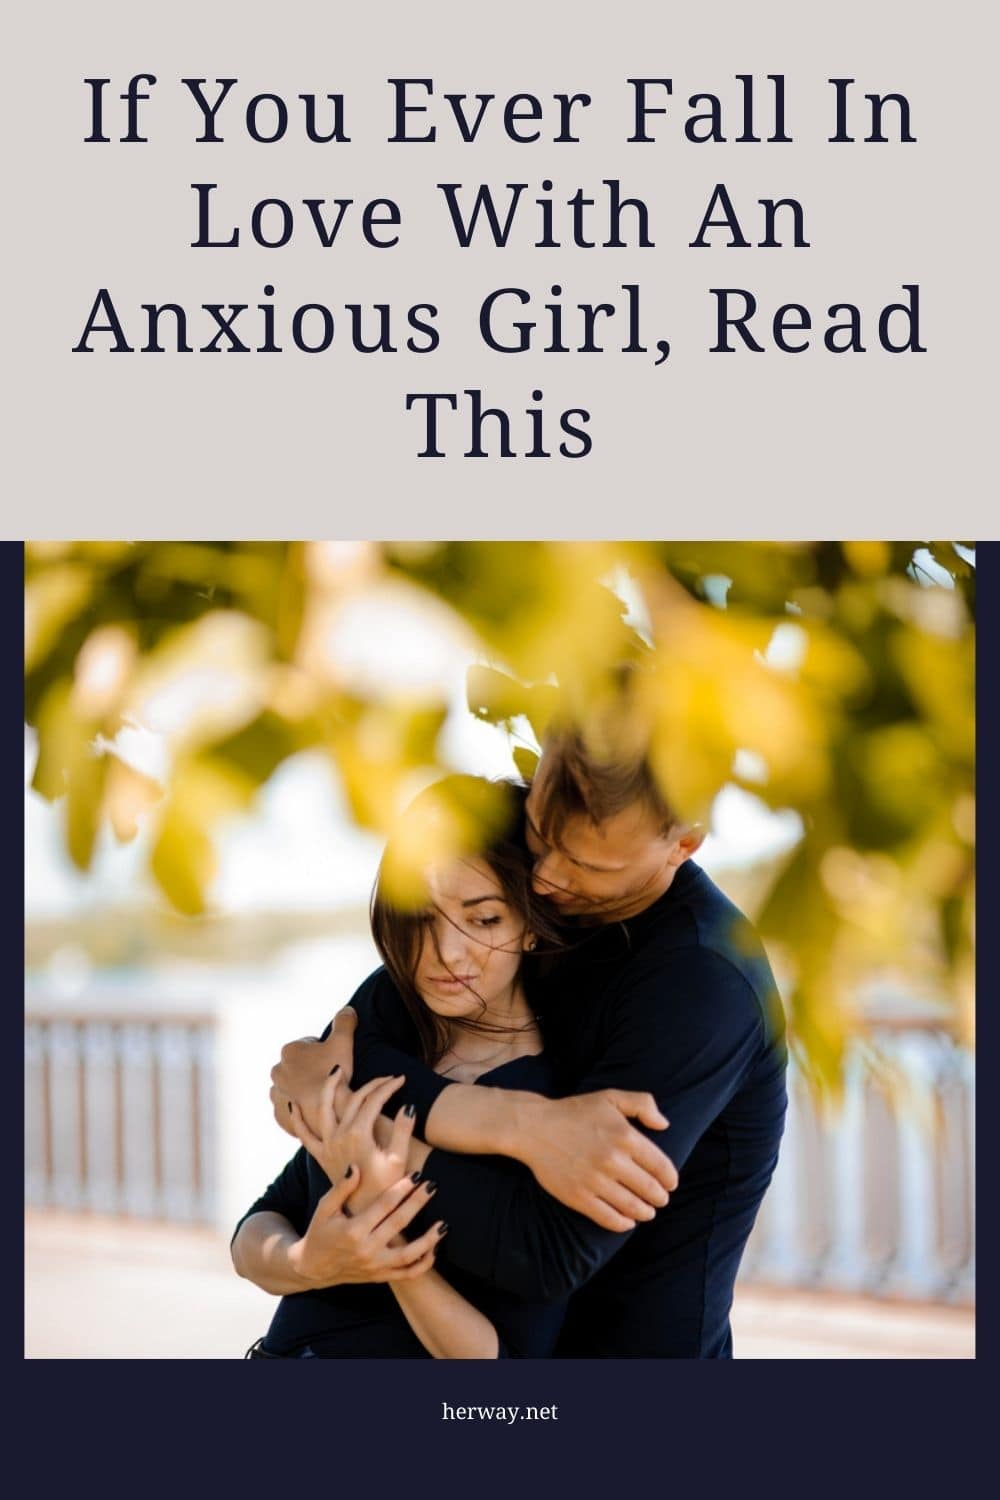 If You Ever Fall In Love With An Anxious Girl, Read This